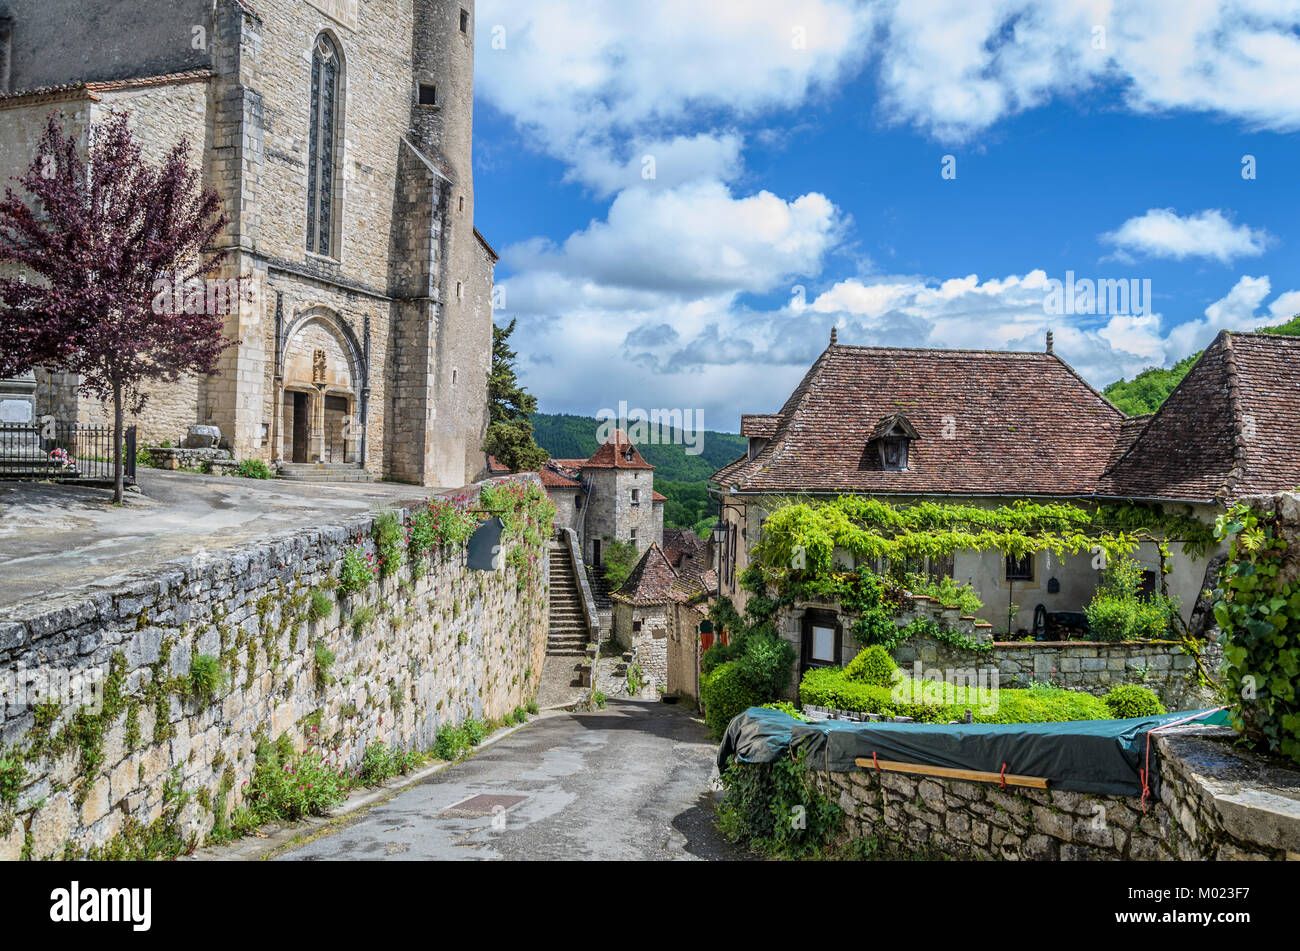 In the valley of the river Lot is the village saint cirq lapopie of which stands out its gothic style church - Stock Image